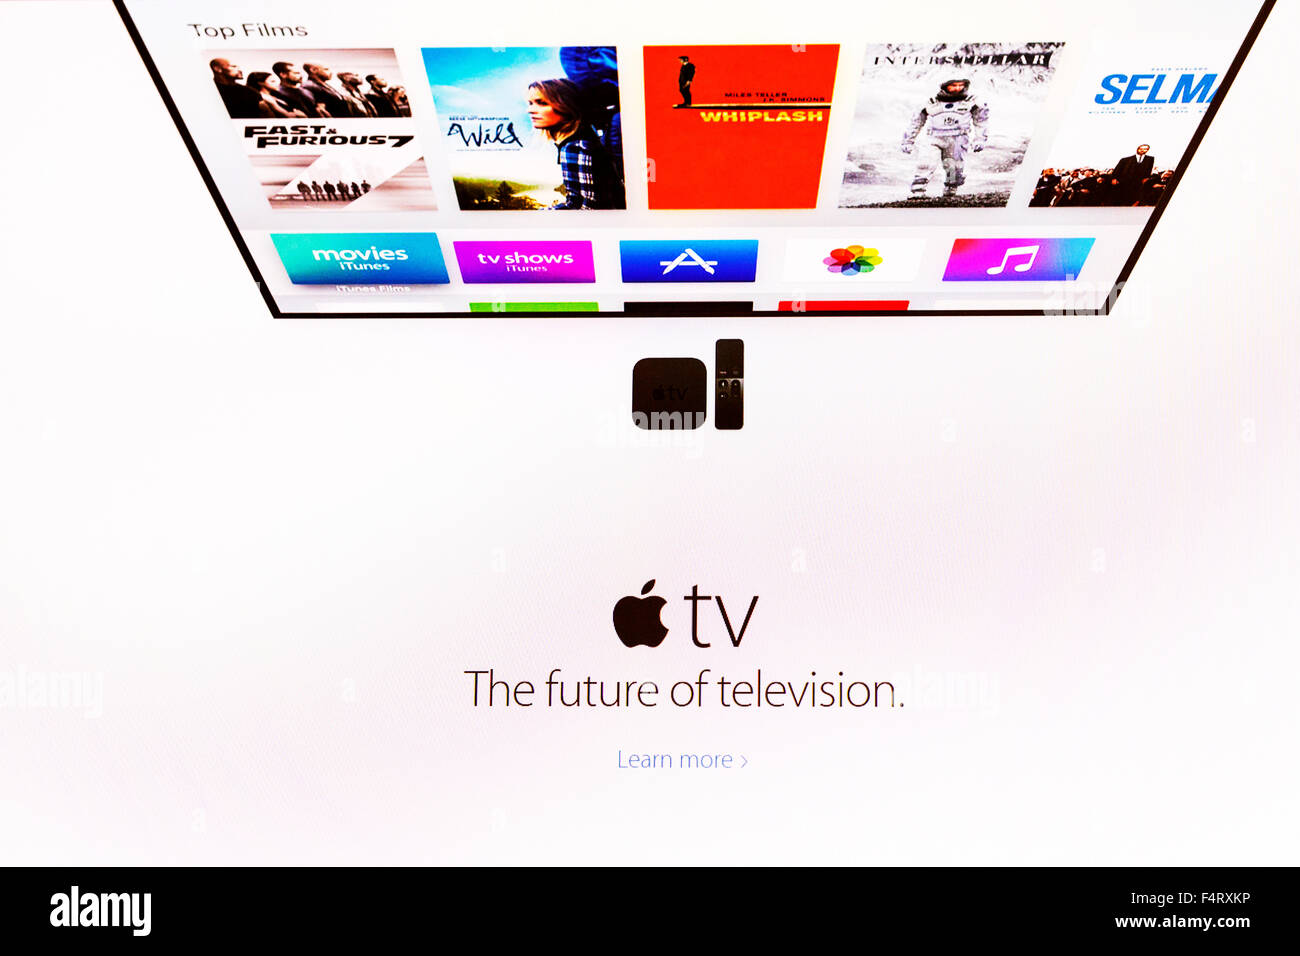 Apple TV website homepage online screen screenshot television company web site internet net sign in UK - Stock Image